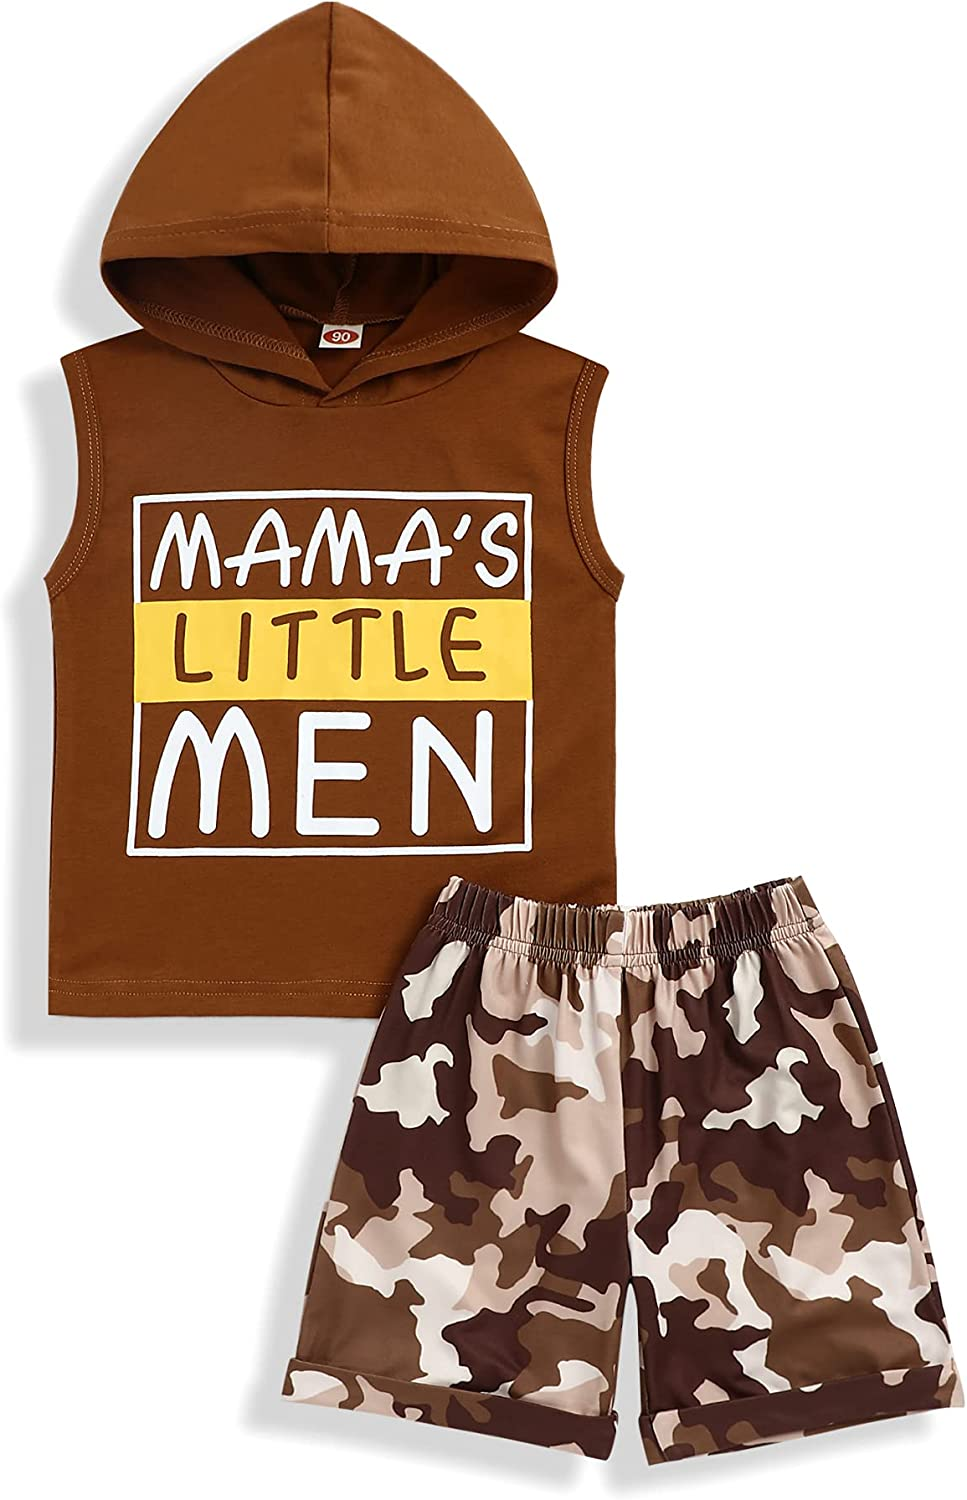 bilison Toddler Baby Boy Clothes Funny Letter Print Hooded Top Sleeveless Vest Camouflage Shorts Summer Outfit Sets